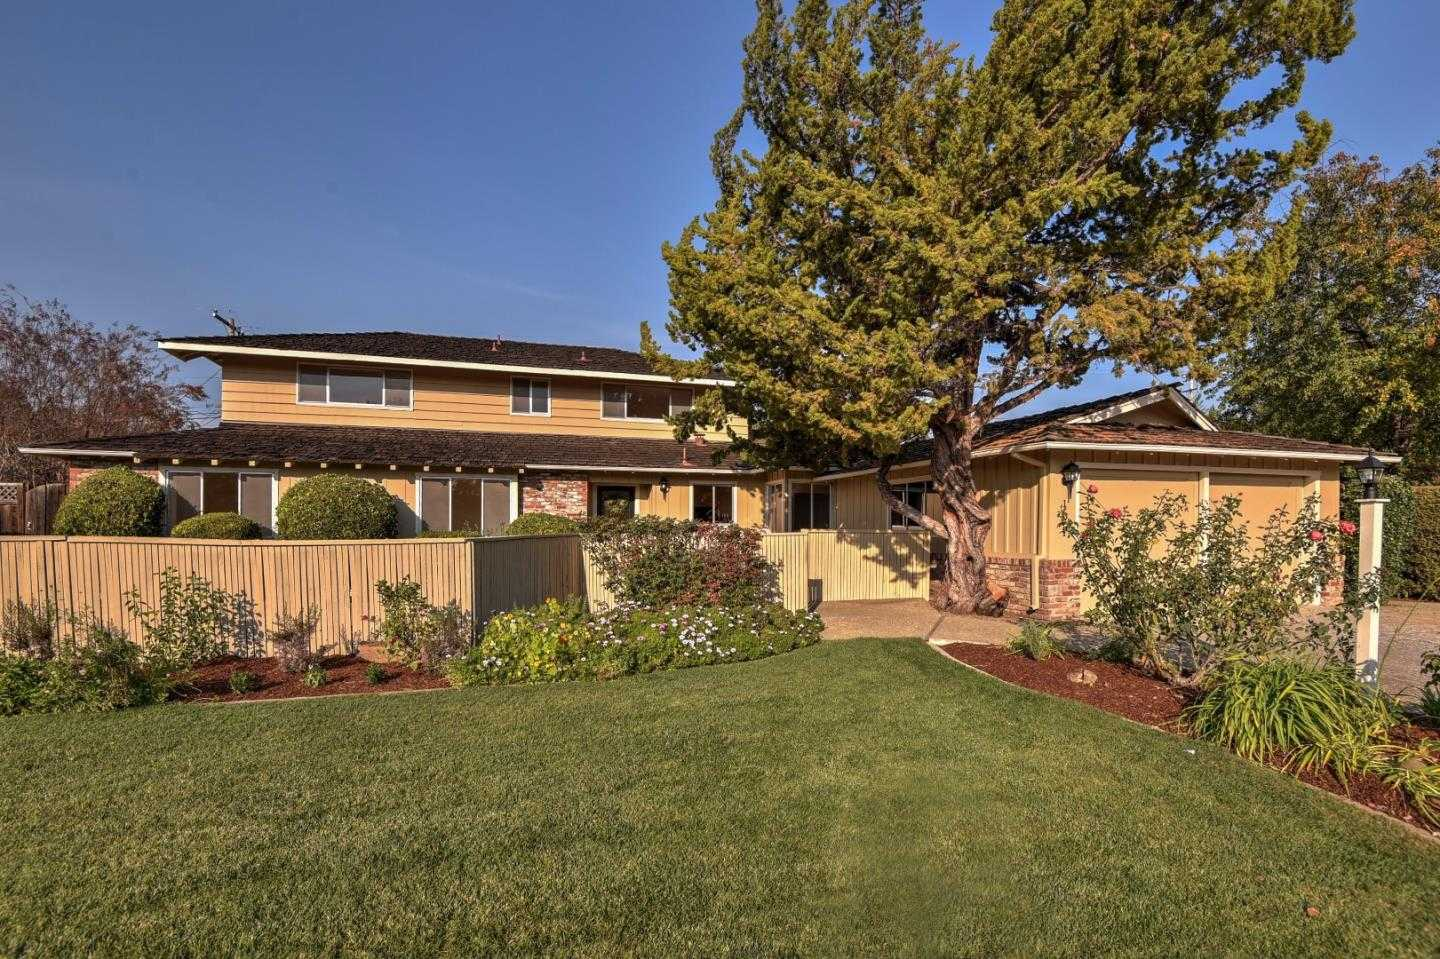 $2,798,000 - 7Br/4Ba -  for Sale in Los Altos